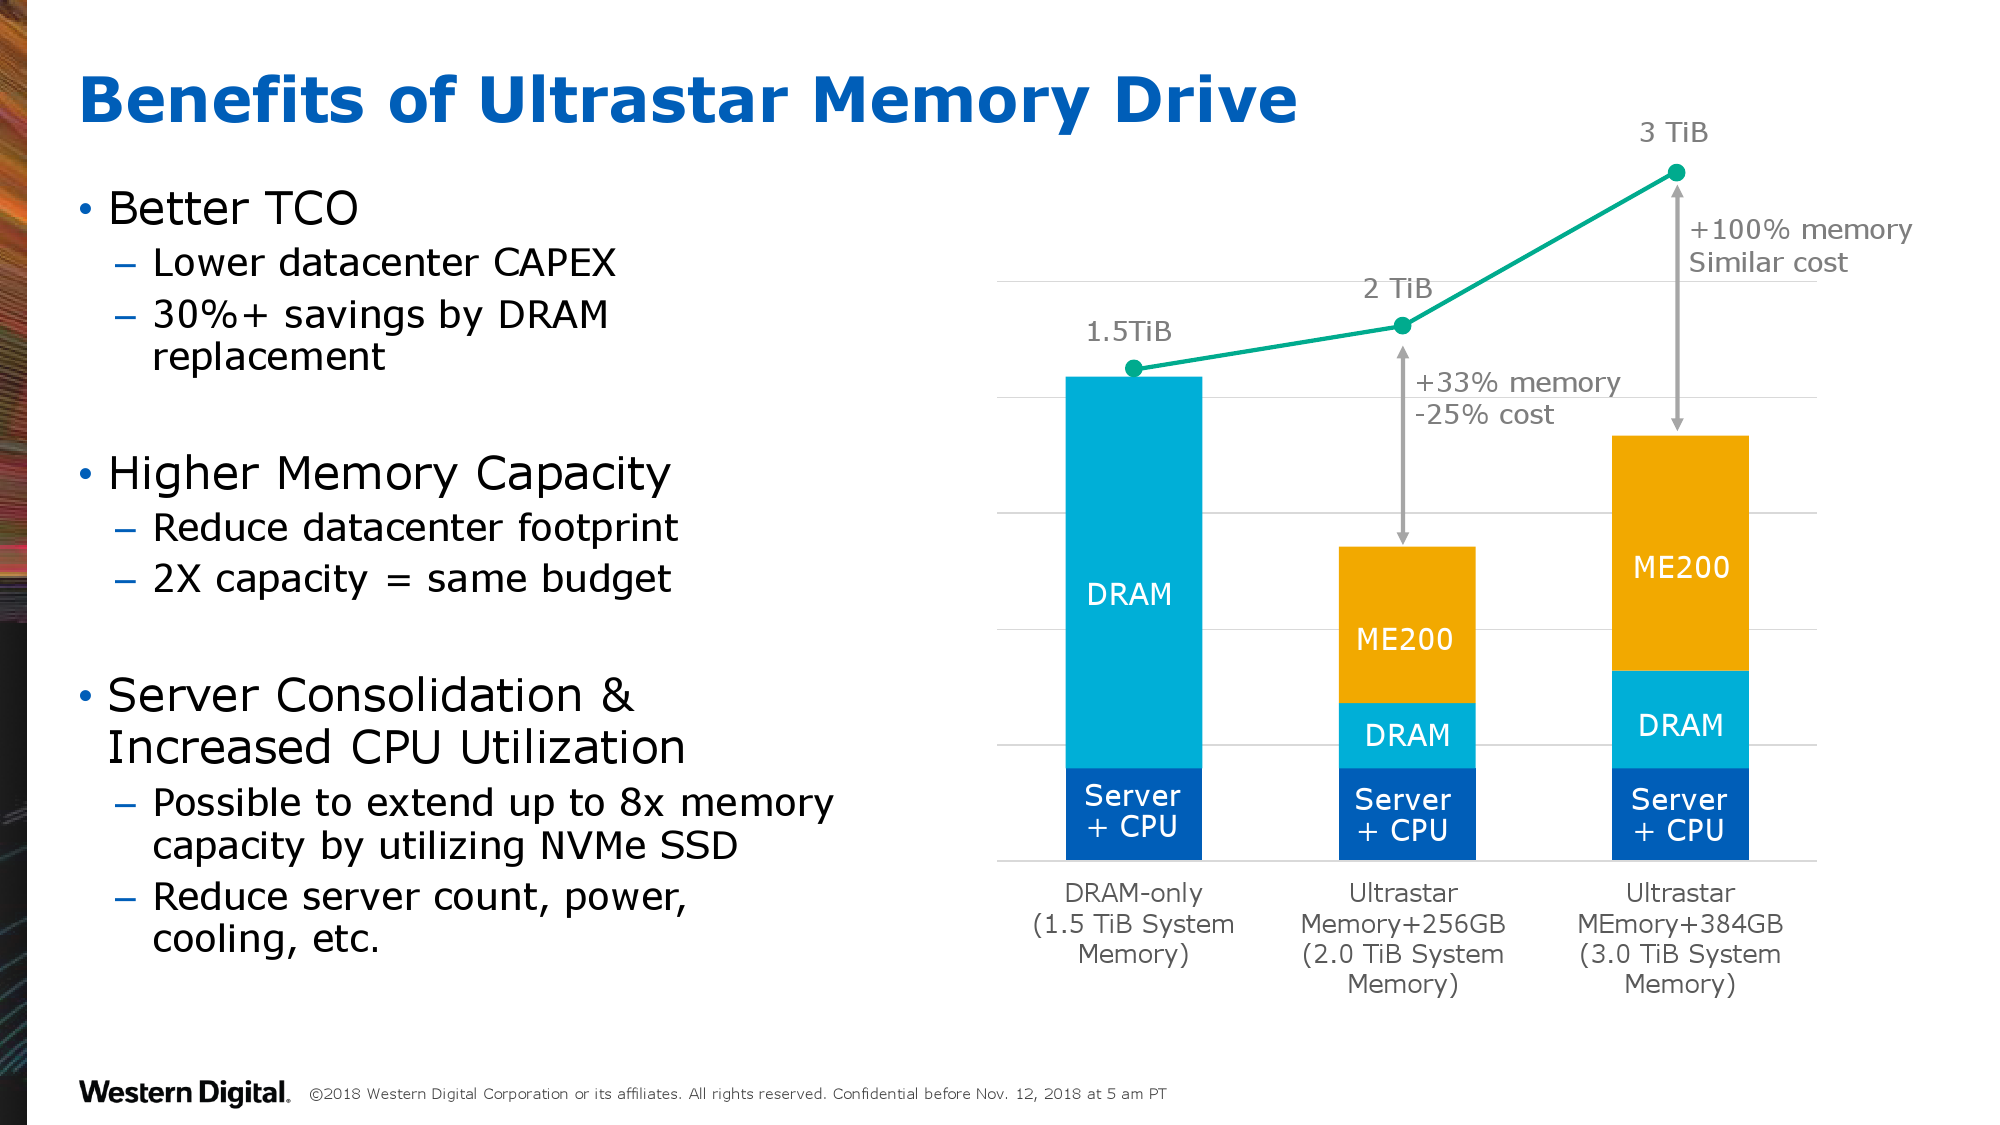 Western Digital Announces Ultrastar DC ME200 Memory